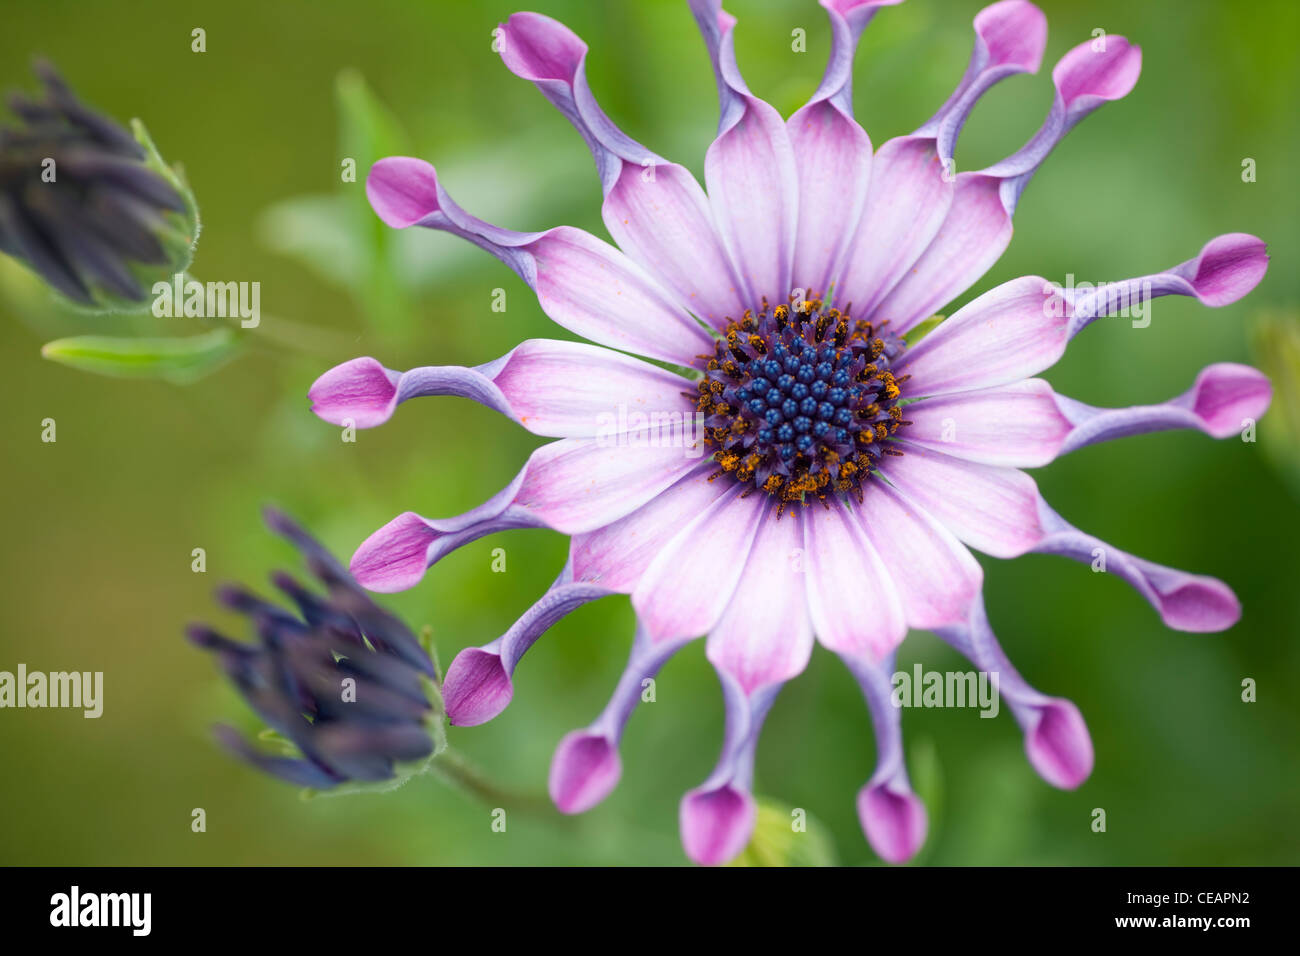 African daisy stock photos african daisy stock images alamy garden flowers uk serenity osteospermum pink p or african daisy or cape daisies izmirmasajfo